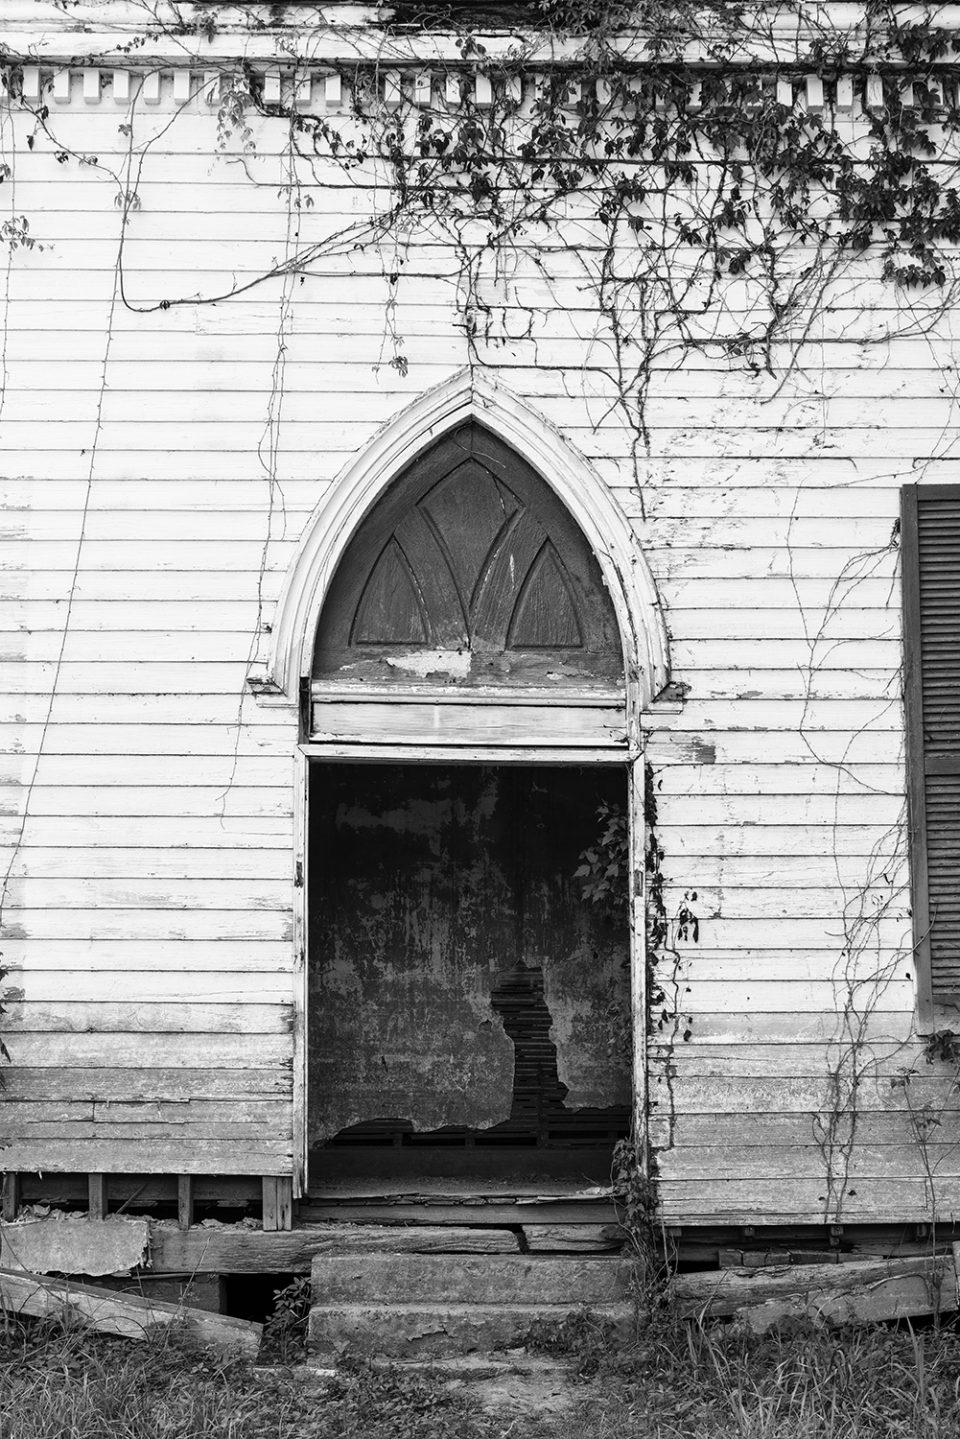 Detail of the front of the old Baptist church built 1850 in abandoned Rodney, Mississippi